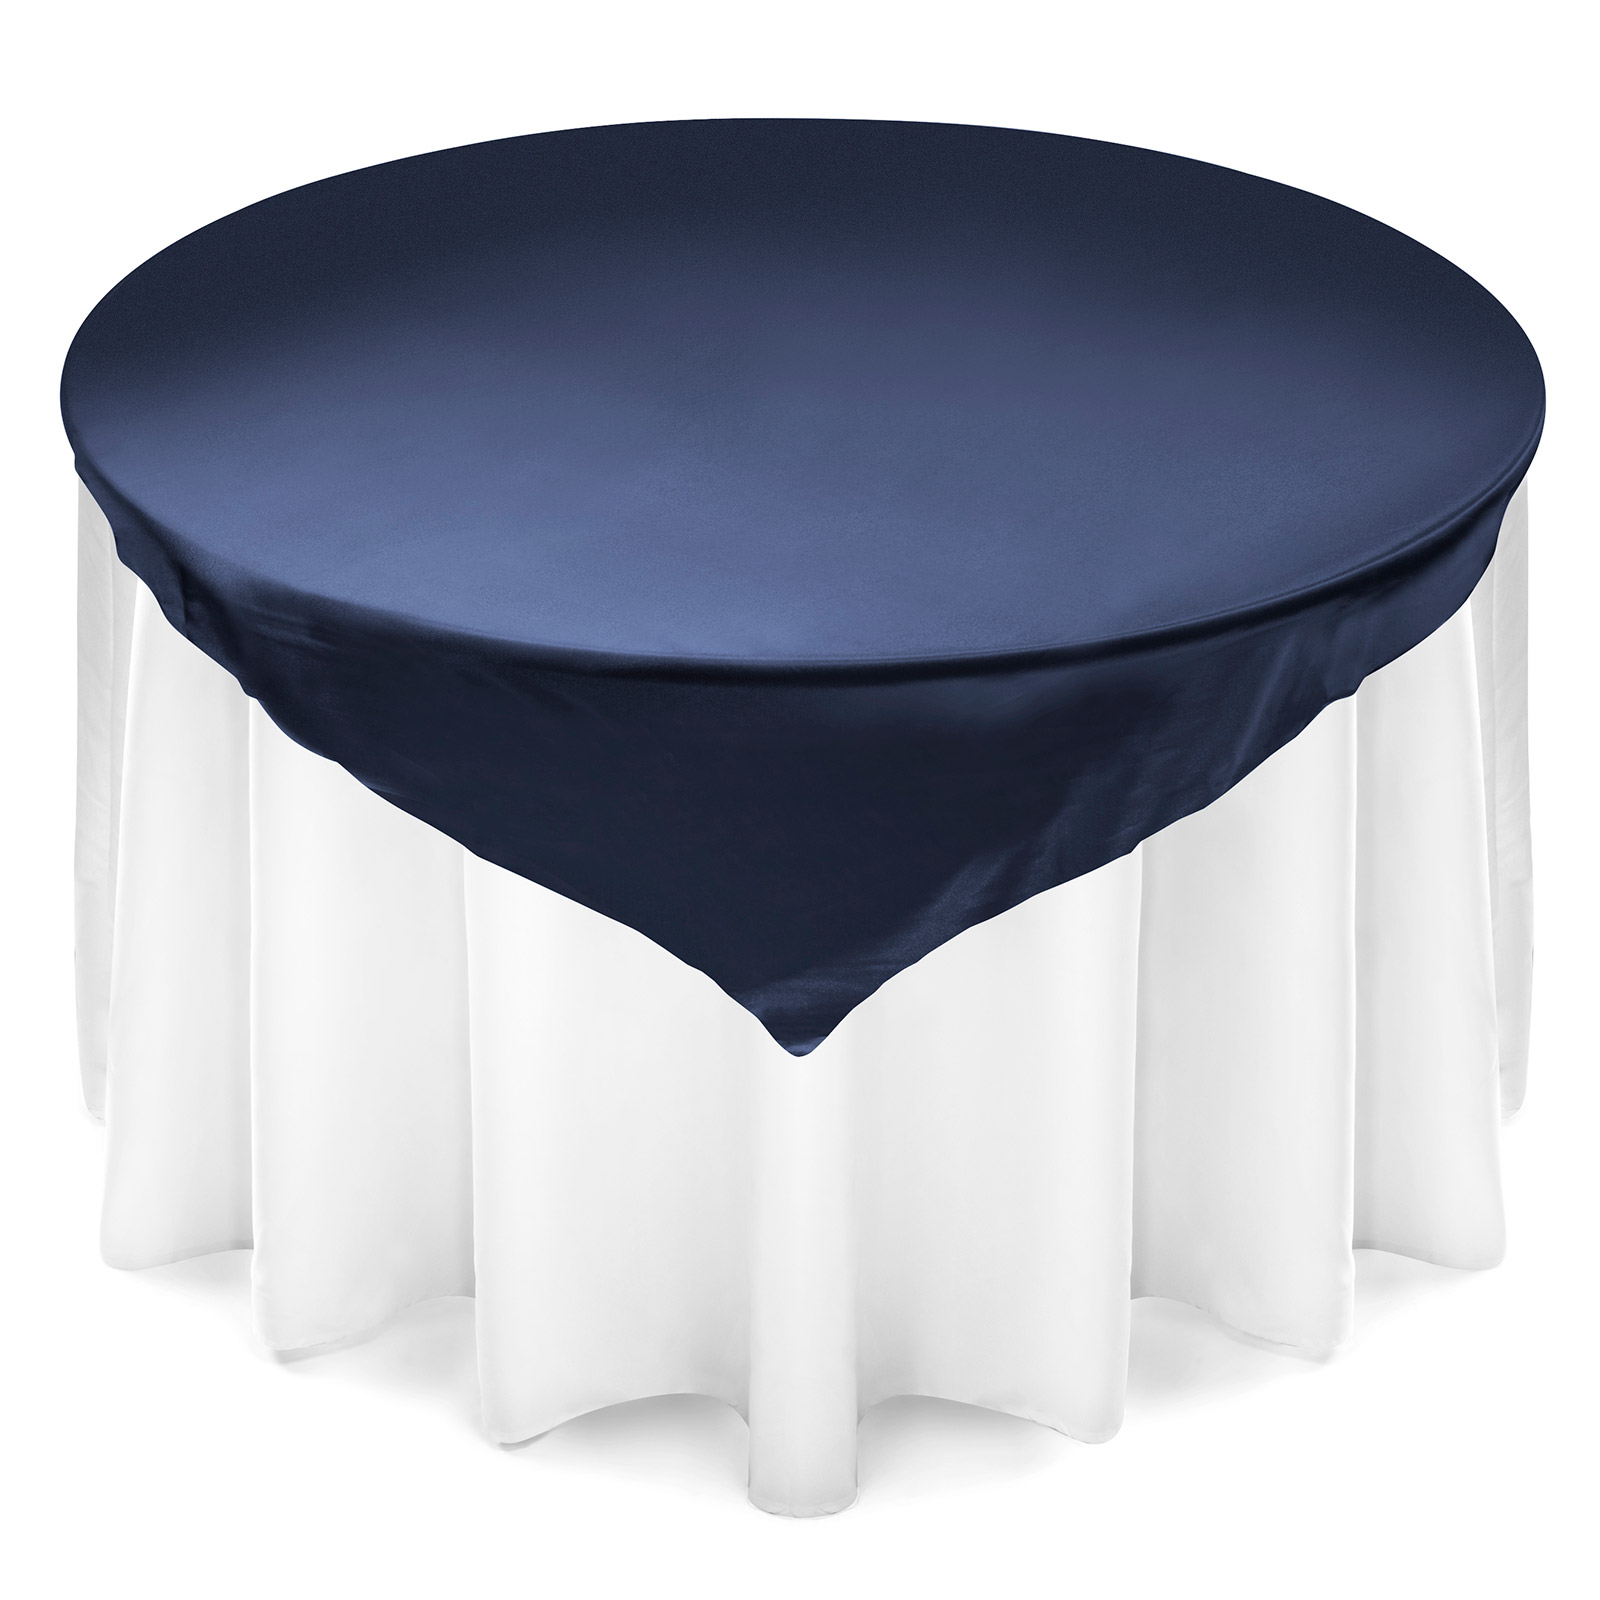 Lann's Linens 72 inch Square Satin Tablecloth Overlay Wedding Banquet Party Decoration... by Lann's Linens